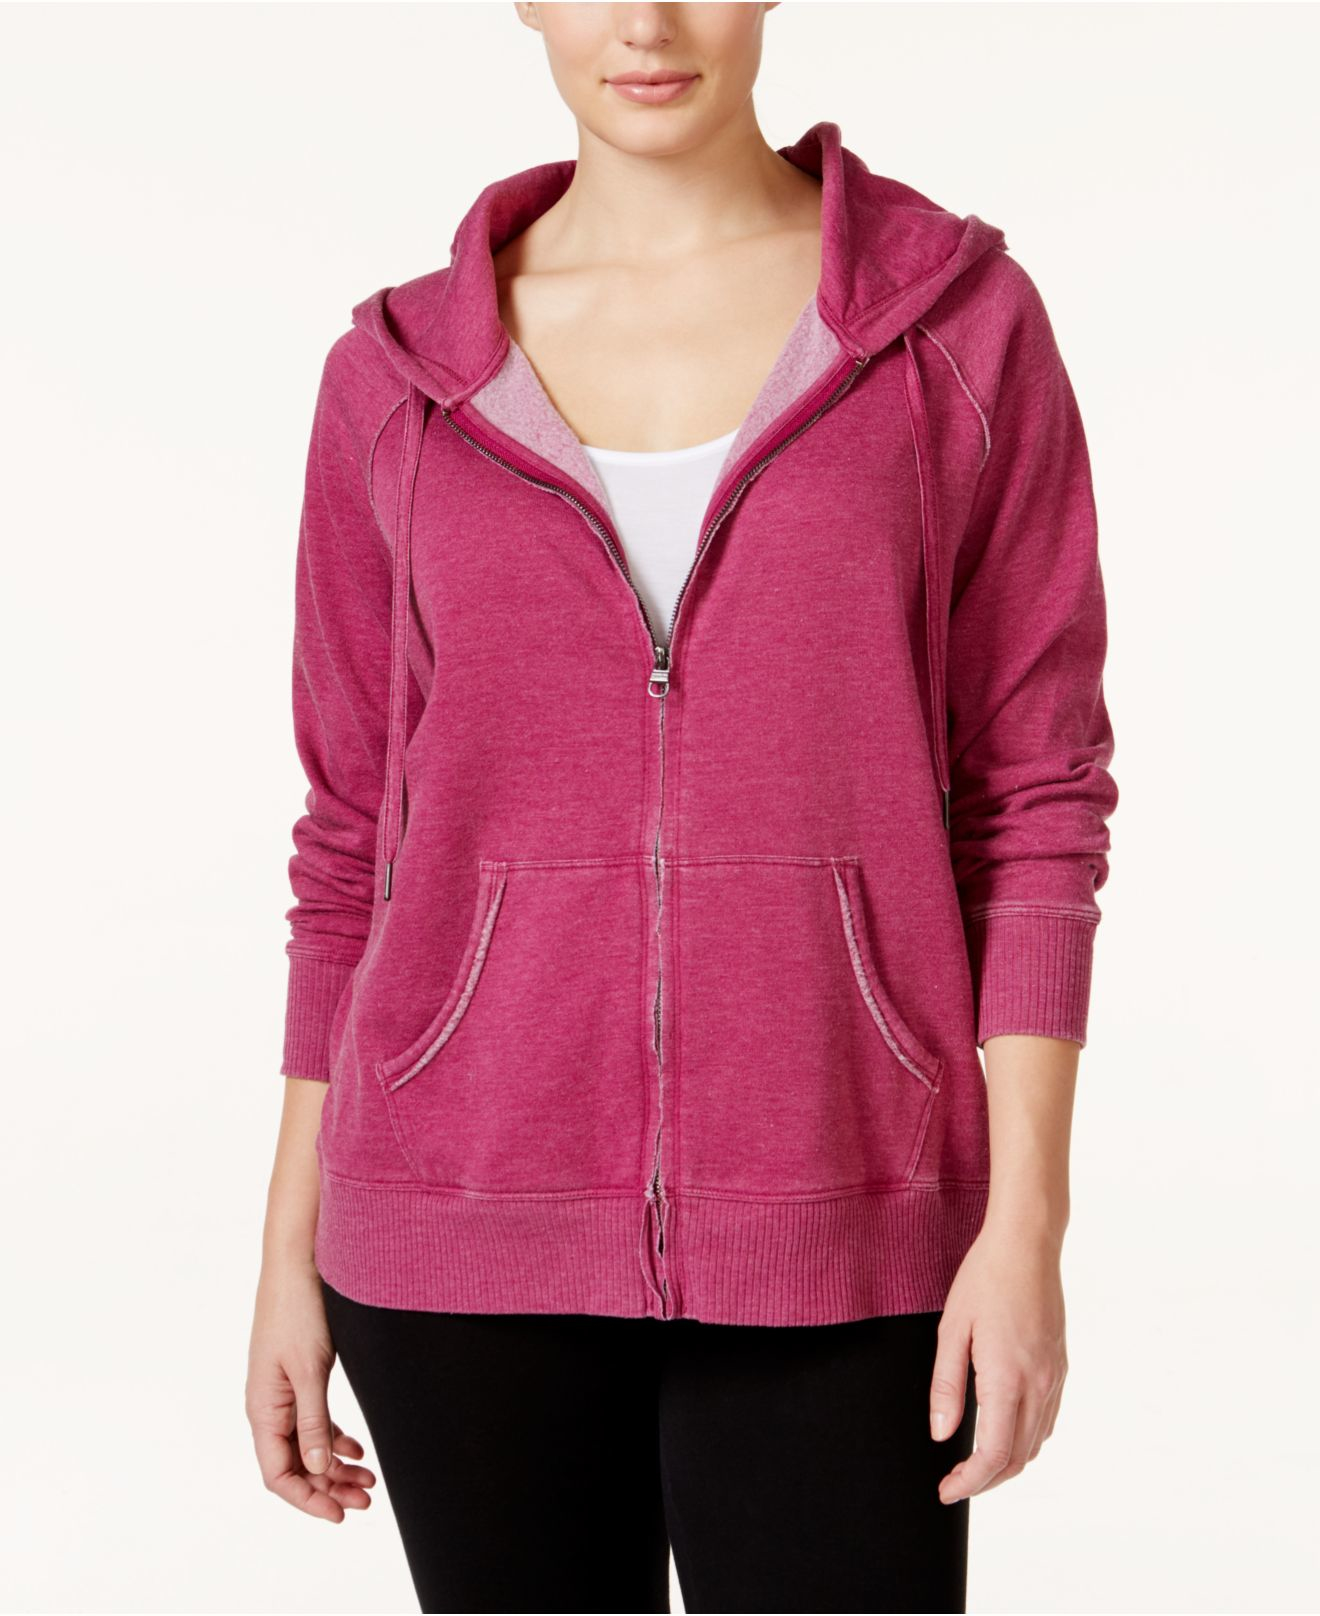 calvin klein performance plus size zipped hoodie in purple lyst. Black Bedroom Furniture Sets. Home Design Ideas